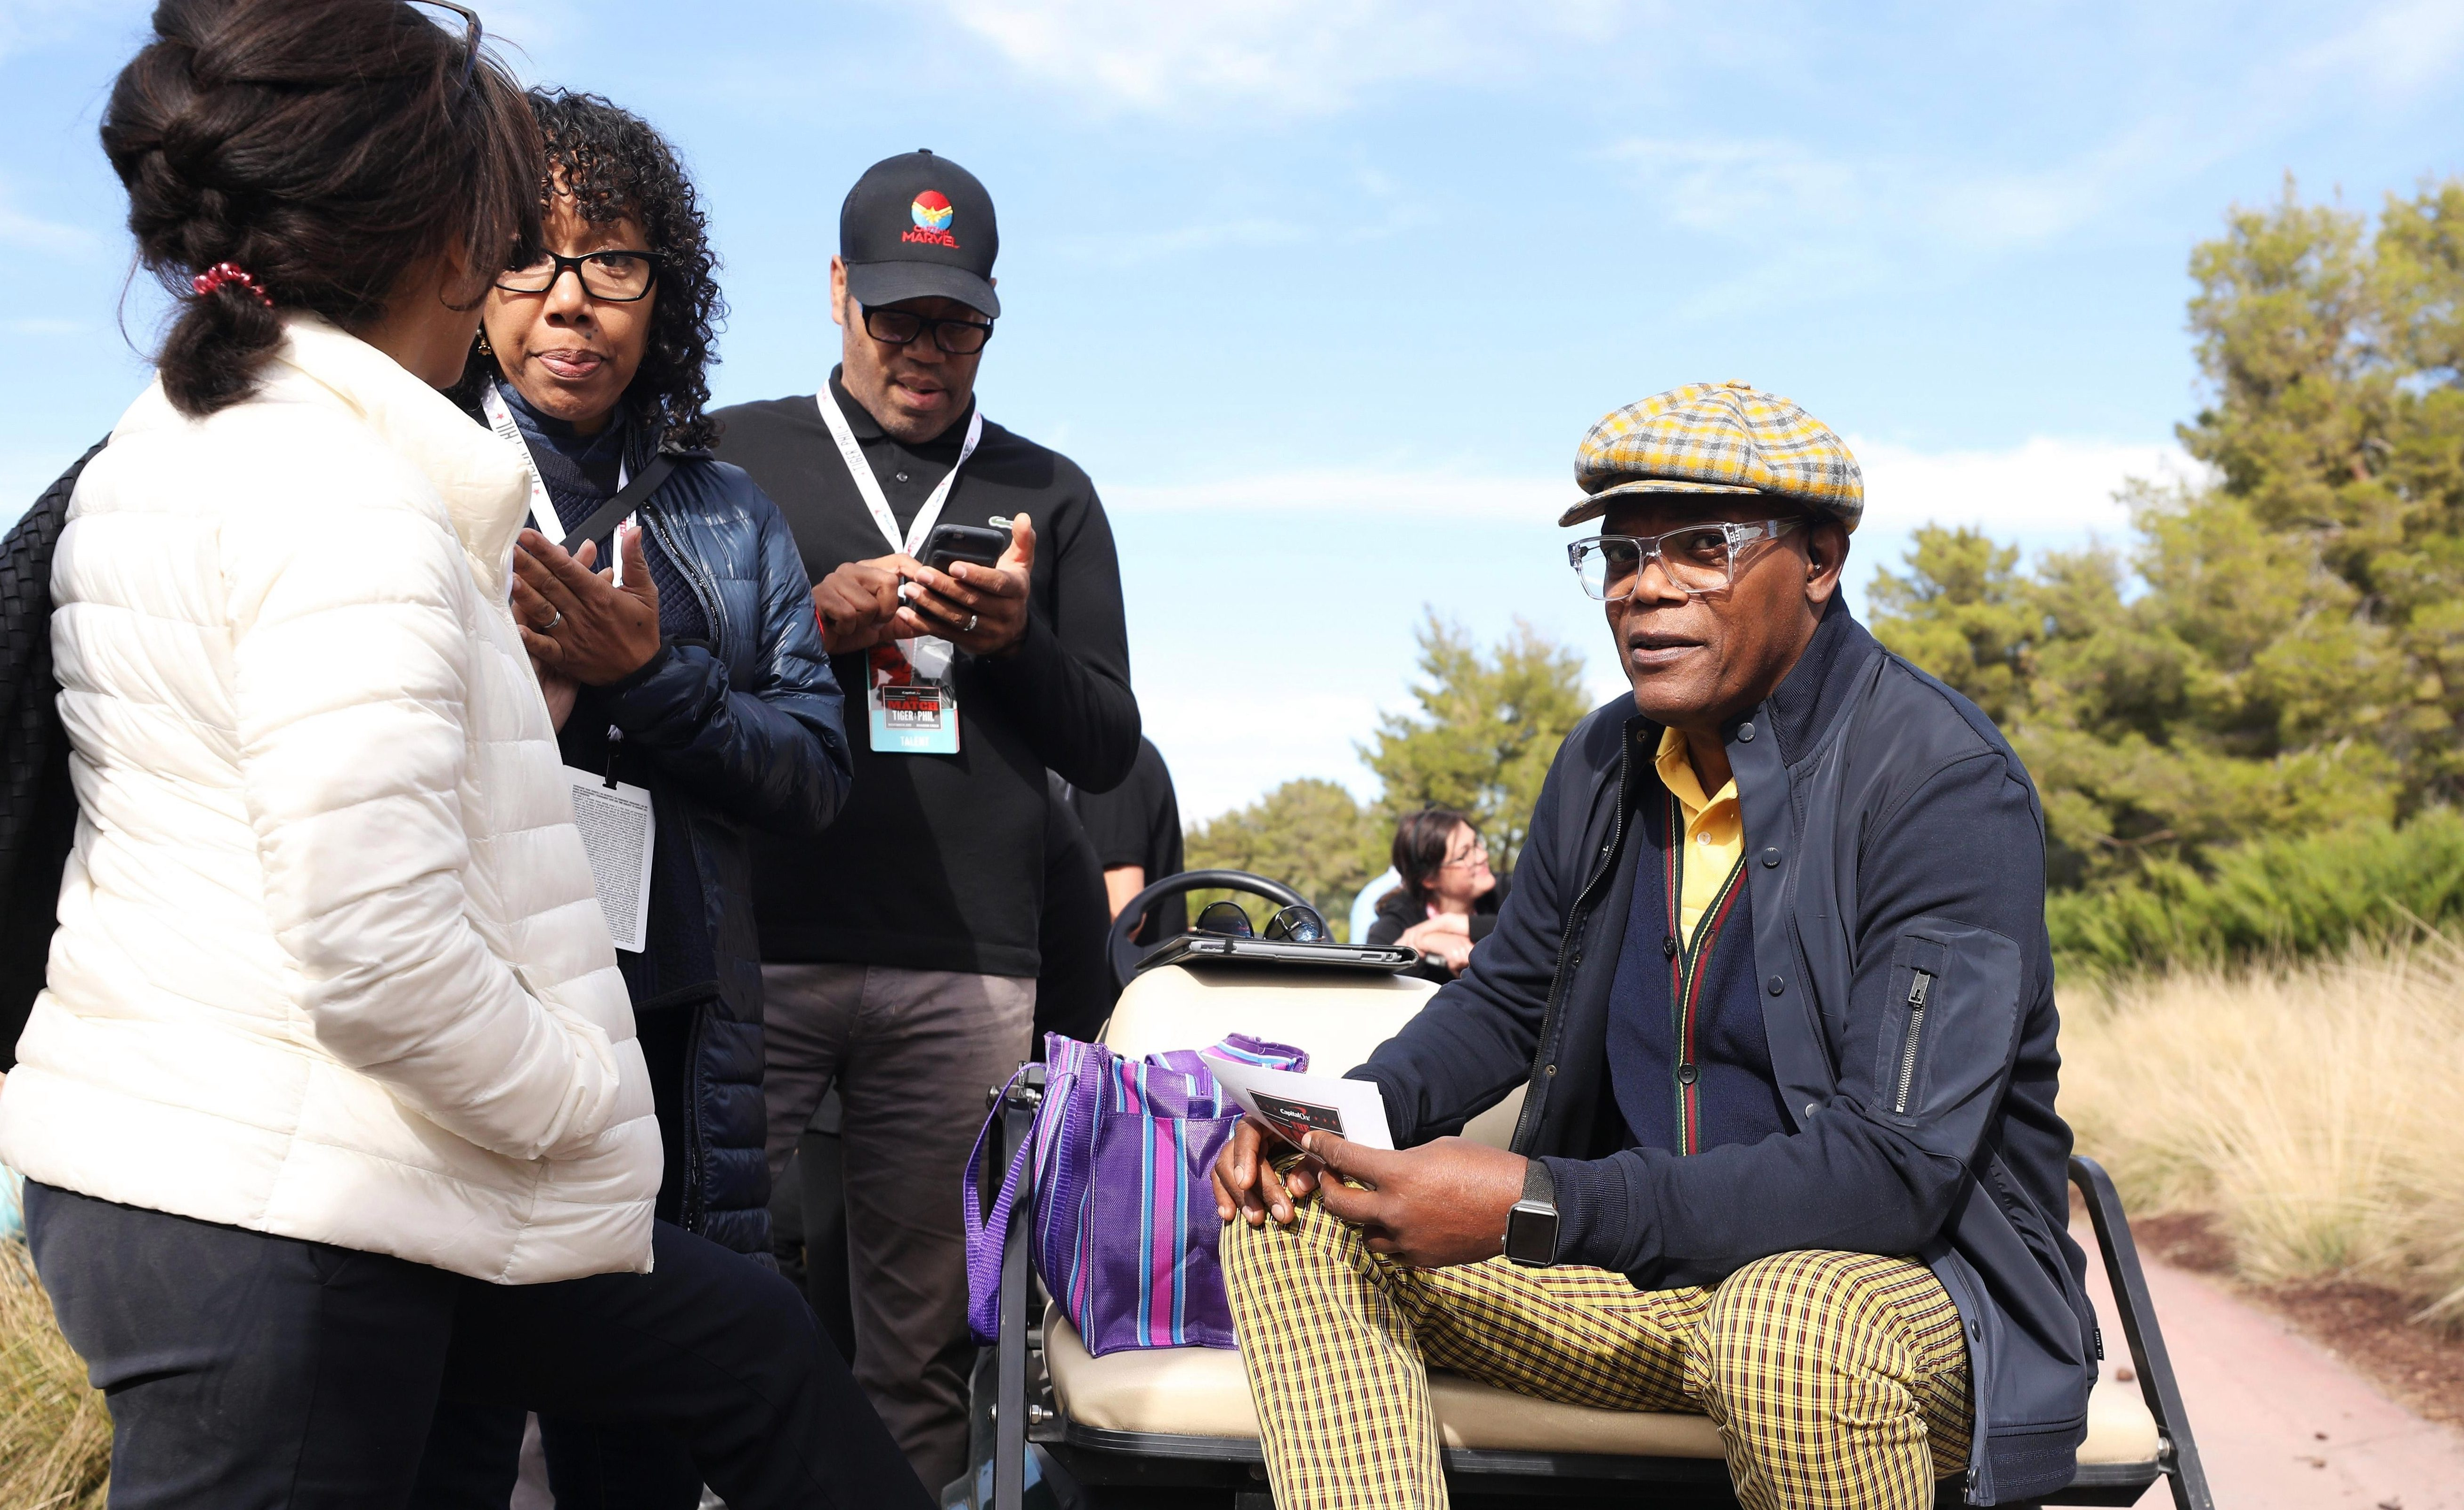 On the first hole, actor Samuel L Jackson introduces the players. Of course he does